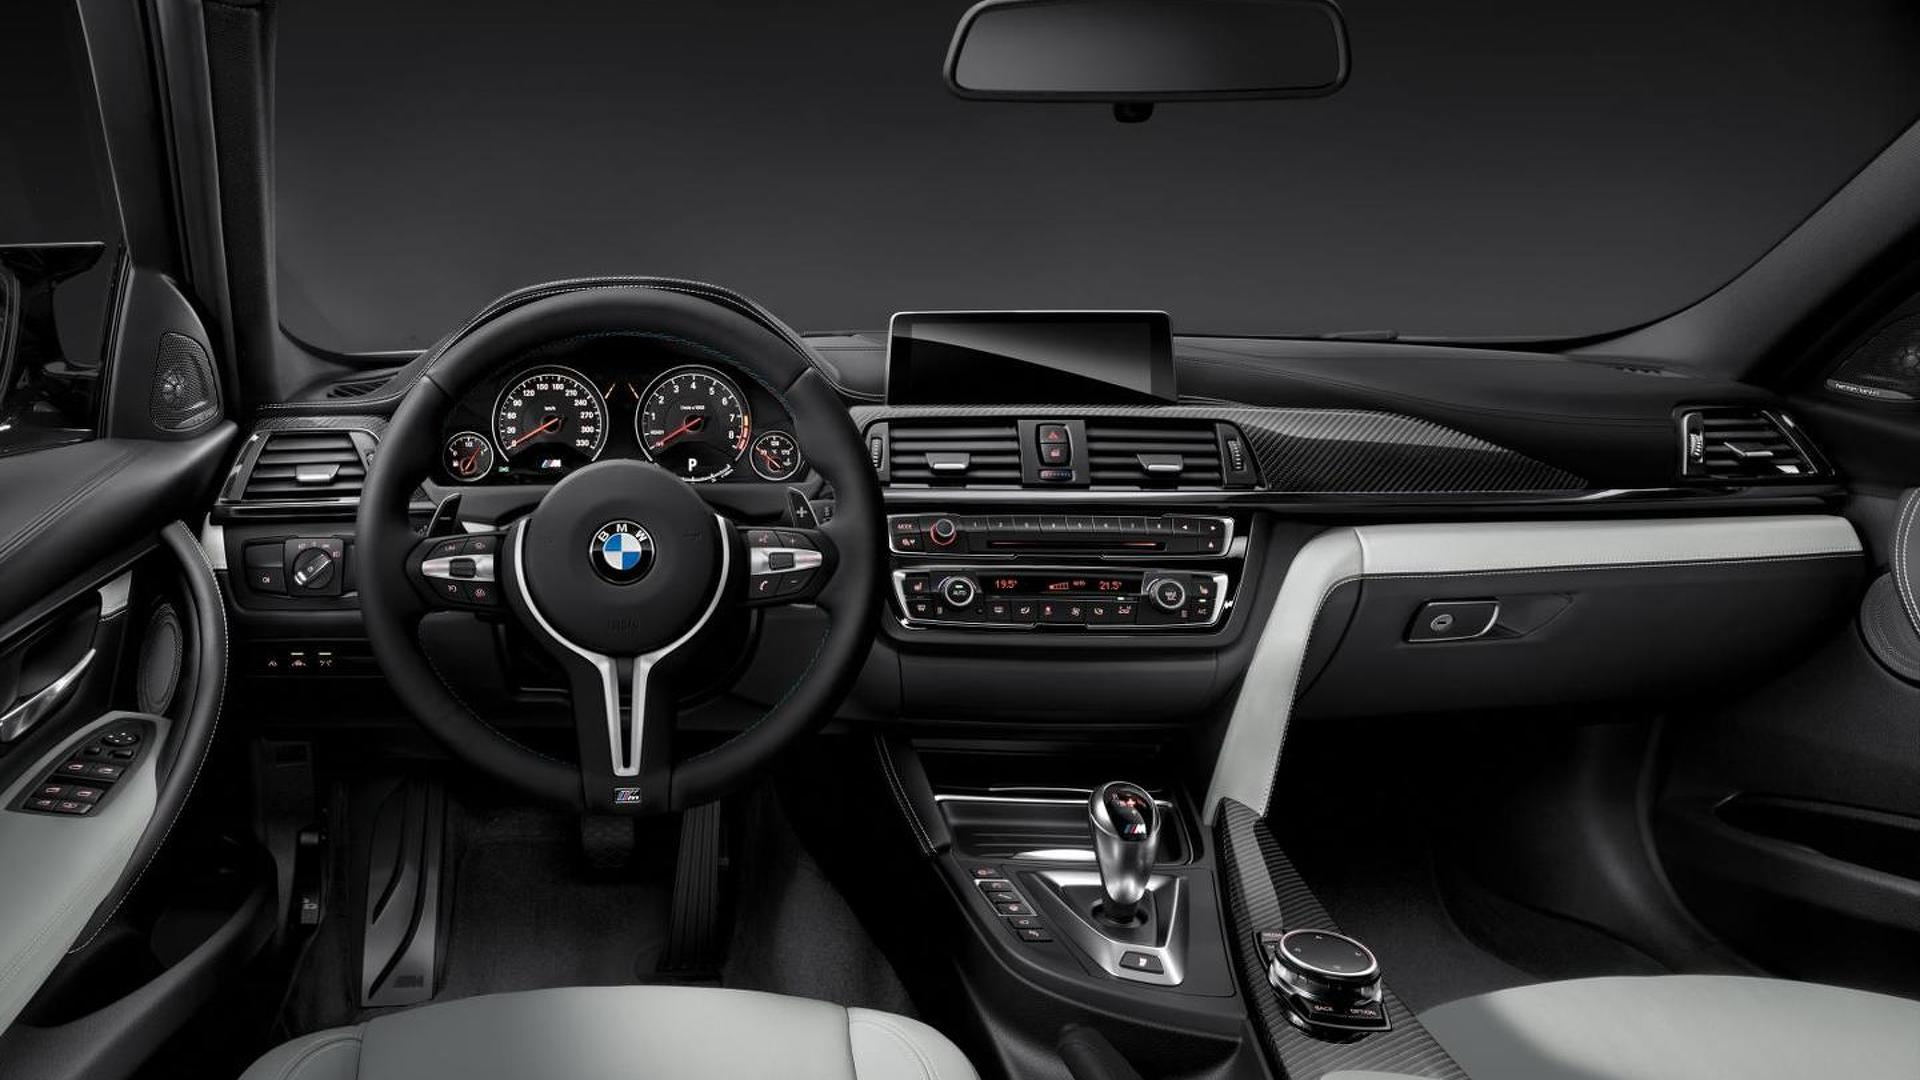 BMW M Sedan And M Coupe Officially Unleashed With HP - 2014 bmw m3